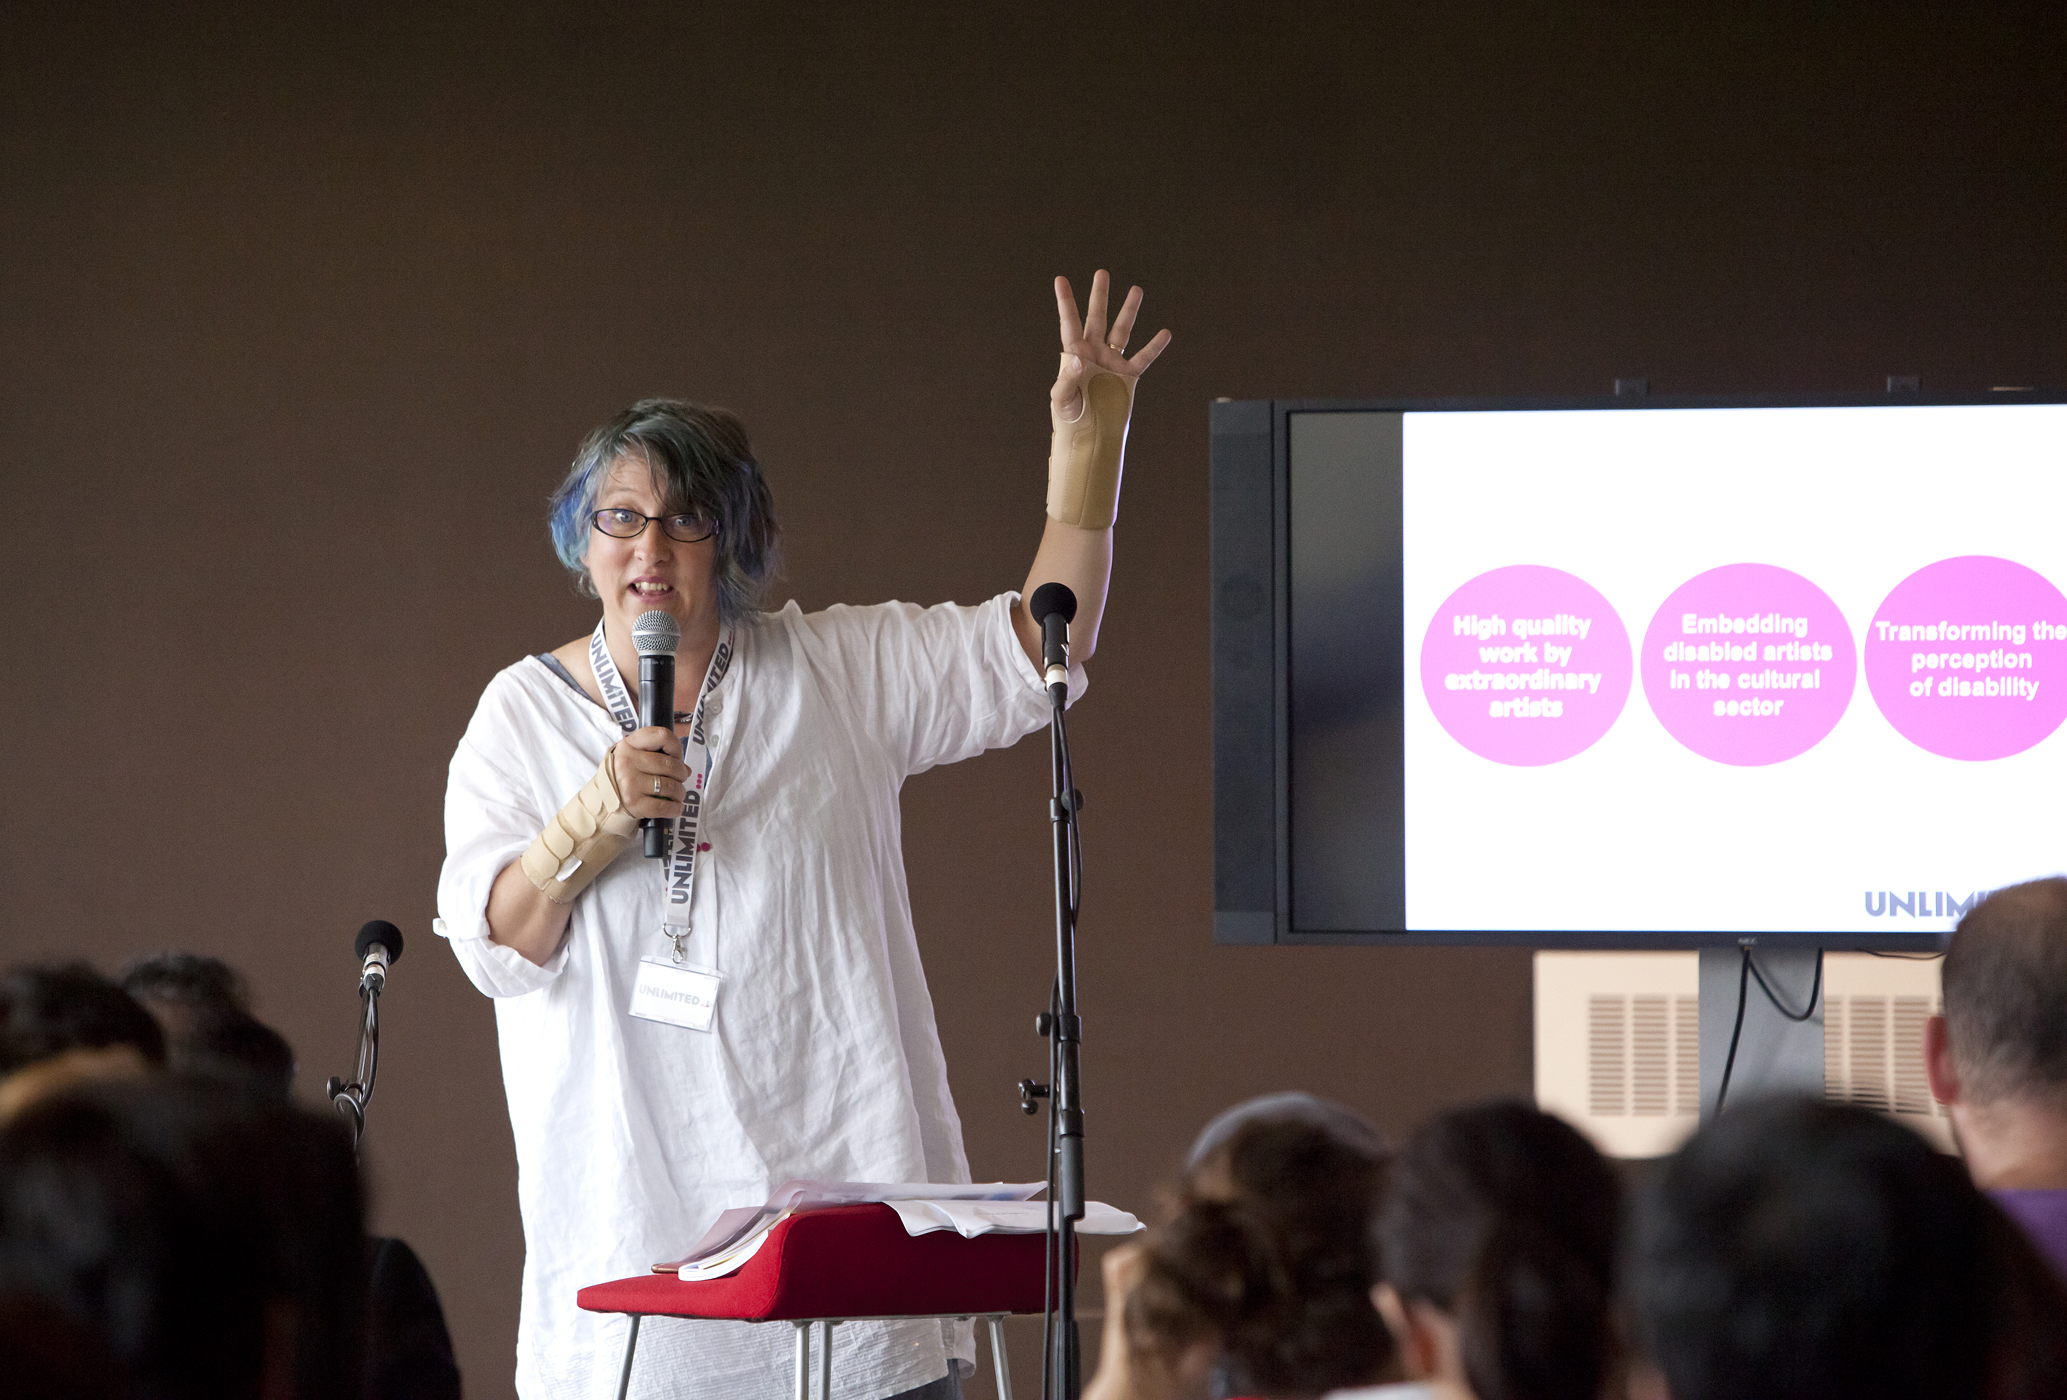 A woman ,giving a lecture , raising her hand as she talks into a microphone. There is a TV screen behind her with a power presentation on it